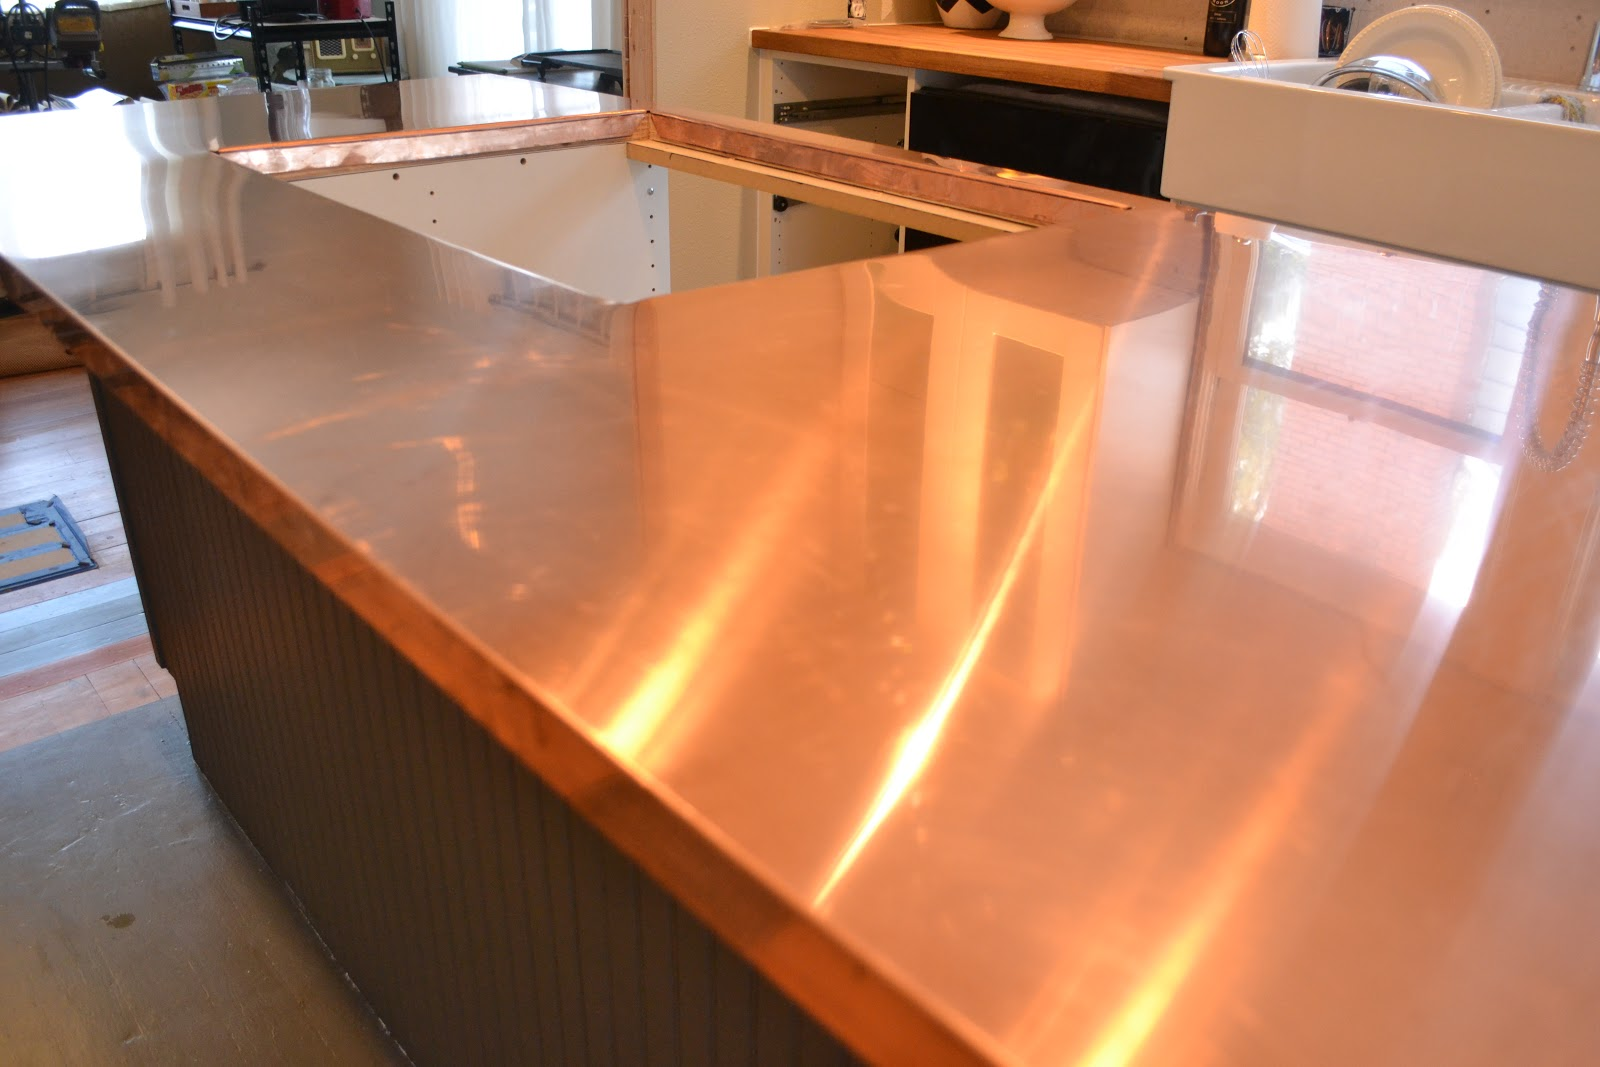 How To Clean Zinc Countertops Copper Countertops Cost Bstcountertops